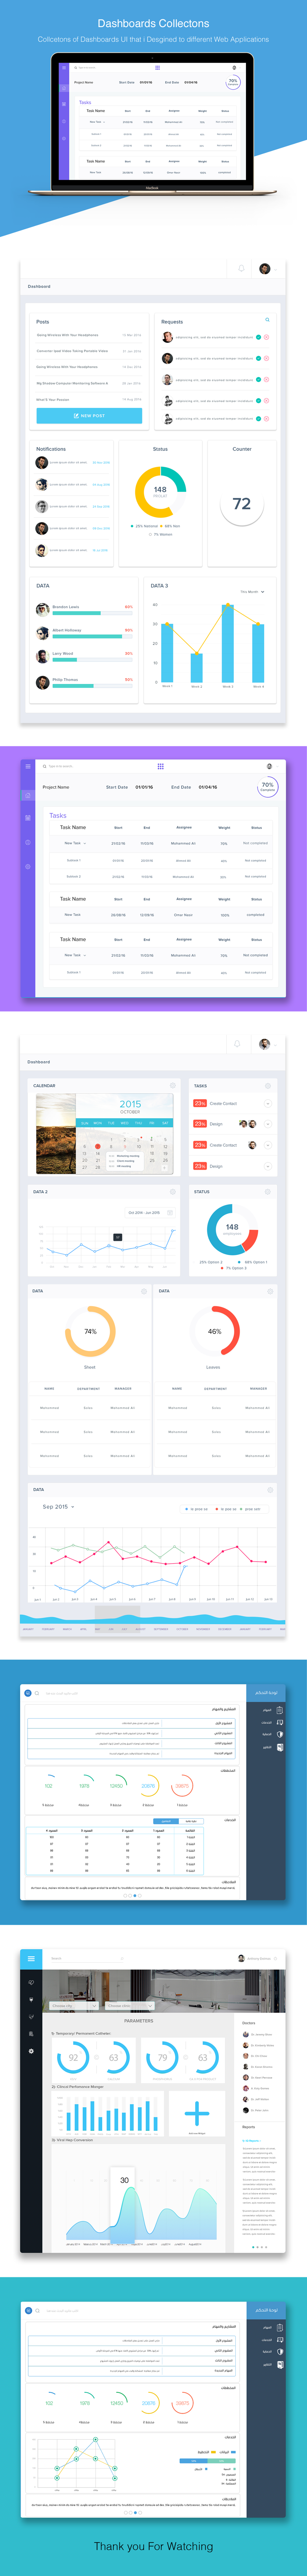 Dashboards Collections